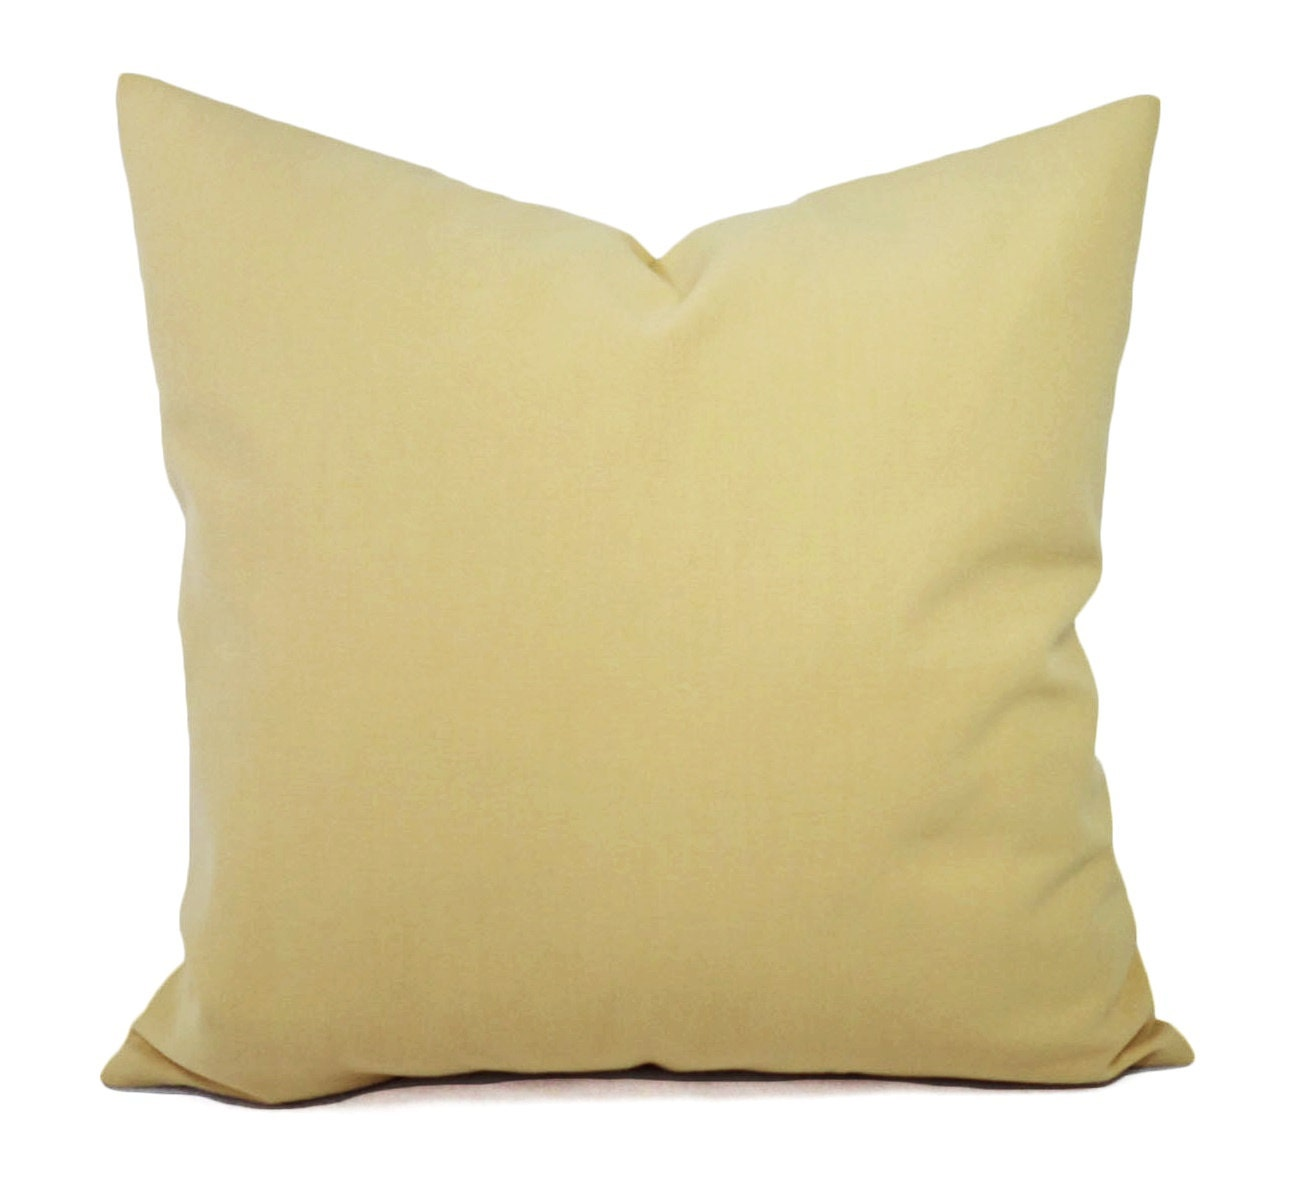 Solid Decorative Throw Pillows : Two Yellow Solid Decorative Pillow Covers Saffron Yellow and